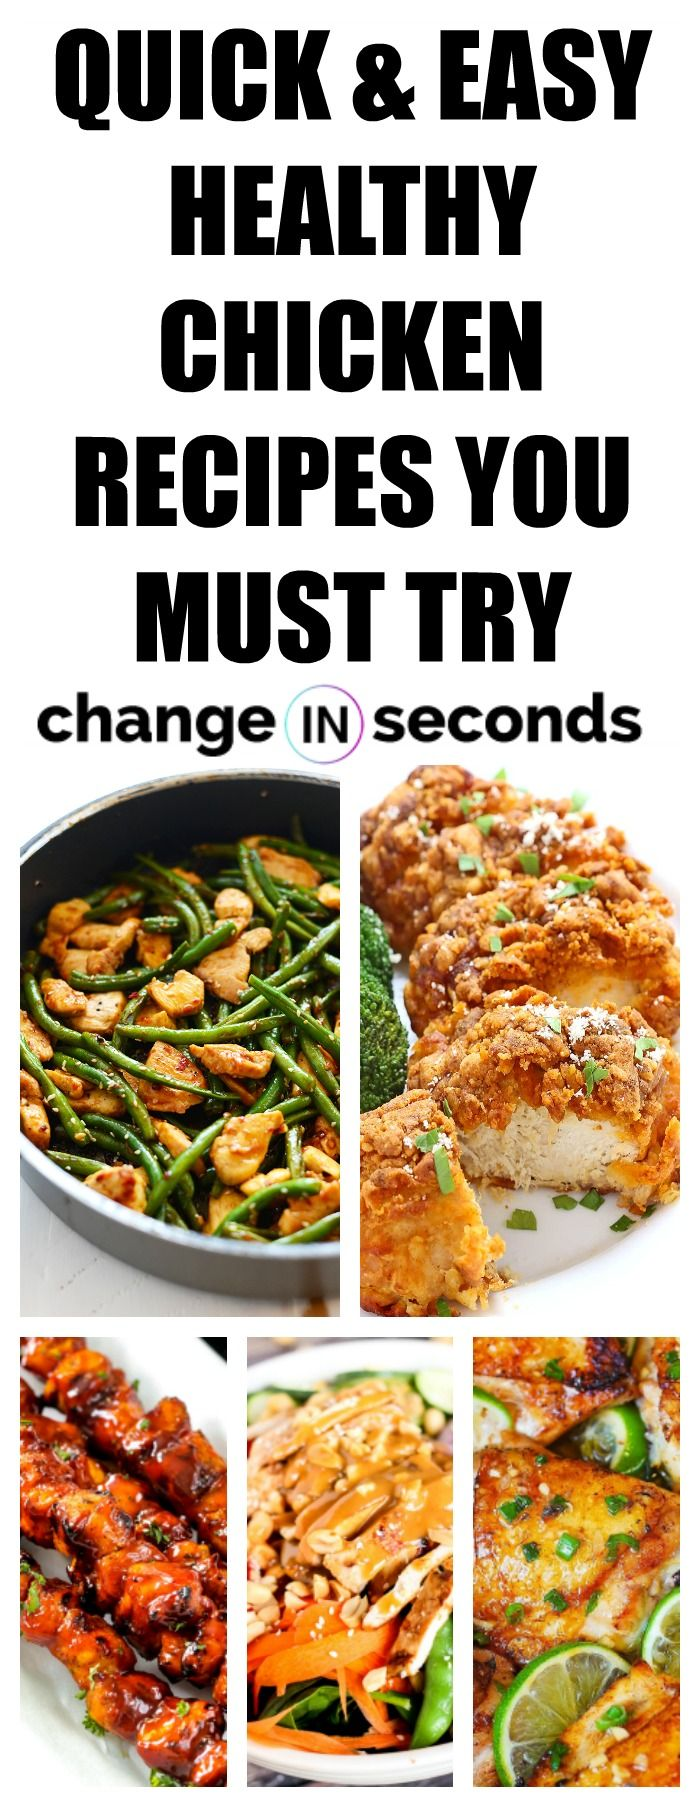 60 Easy And Healthy Chicken Recipes That Are Incredibly Delicious images